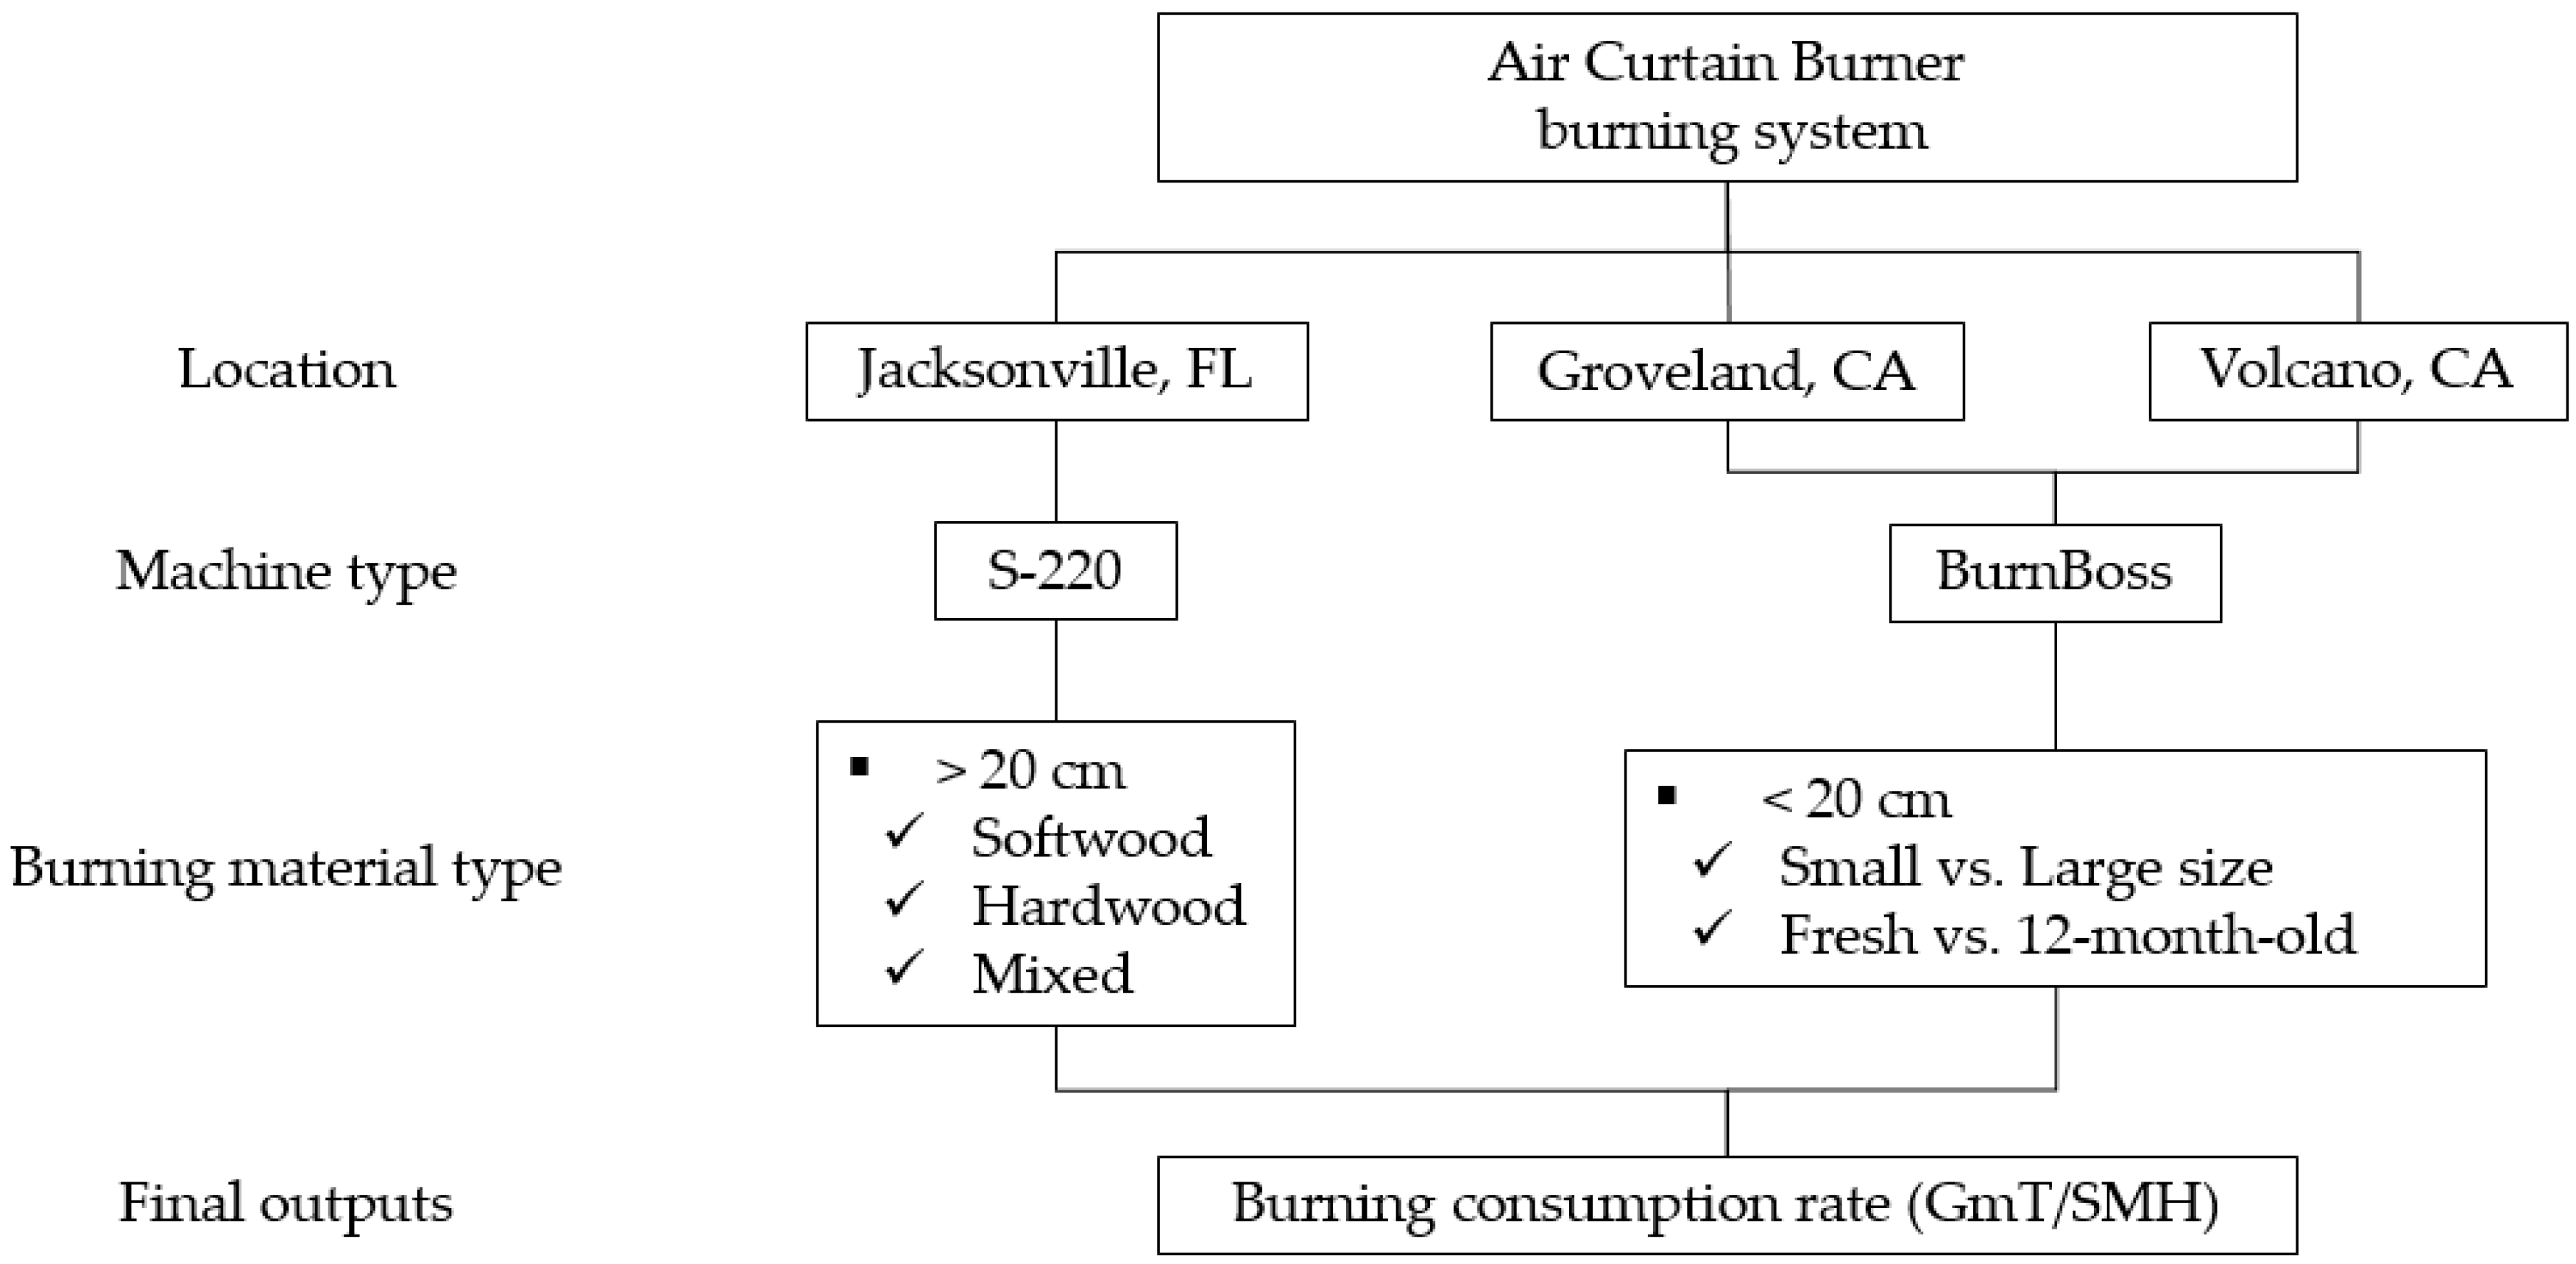 Integrated Air Curtain Burner Burning System Flow Chat. Forests 08 00296  G003